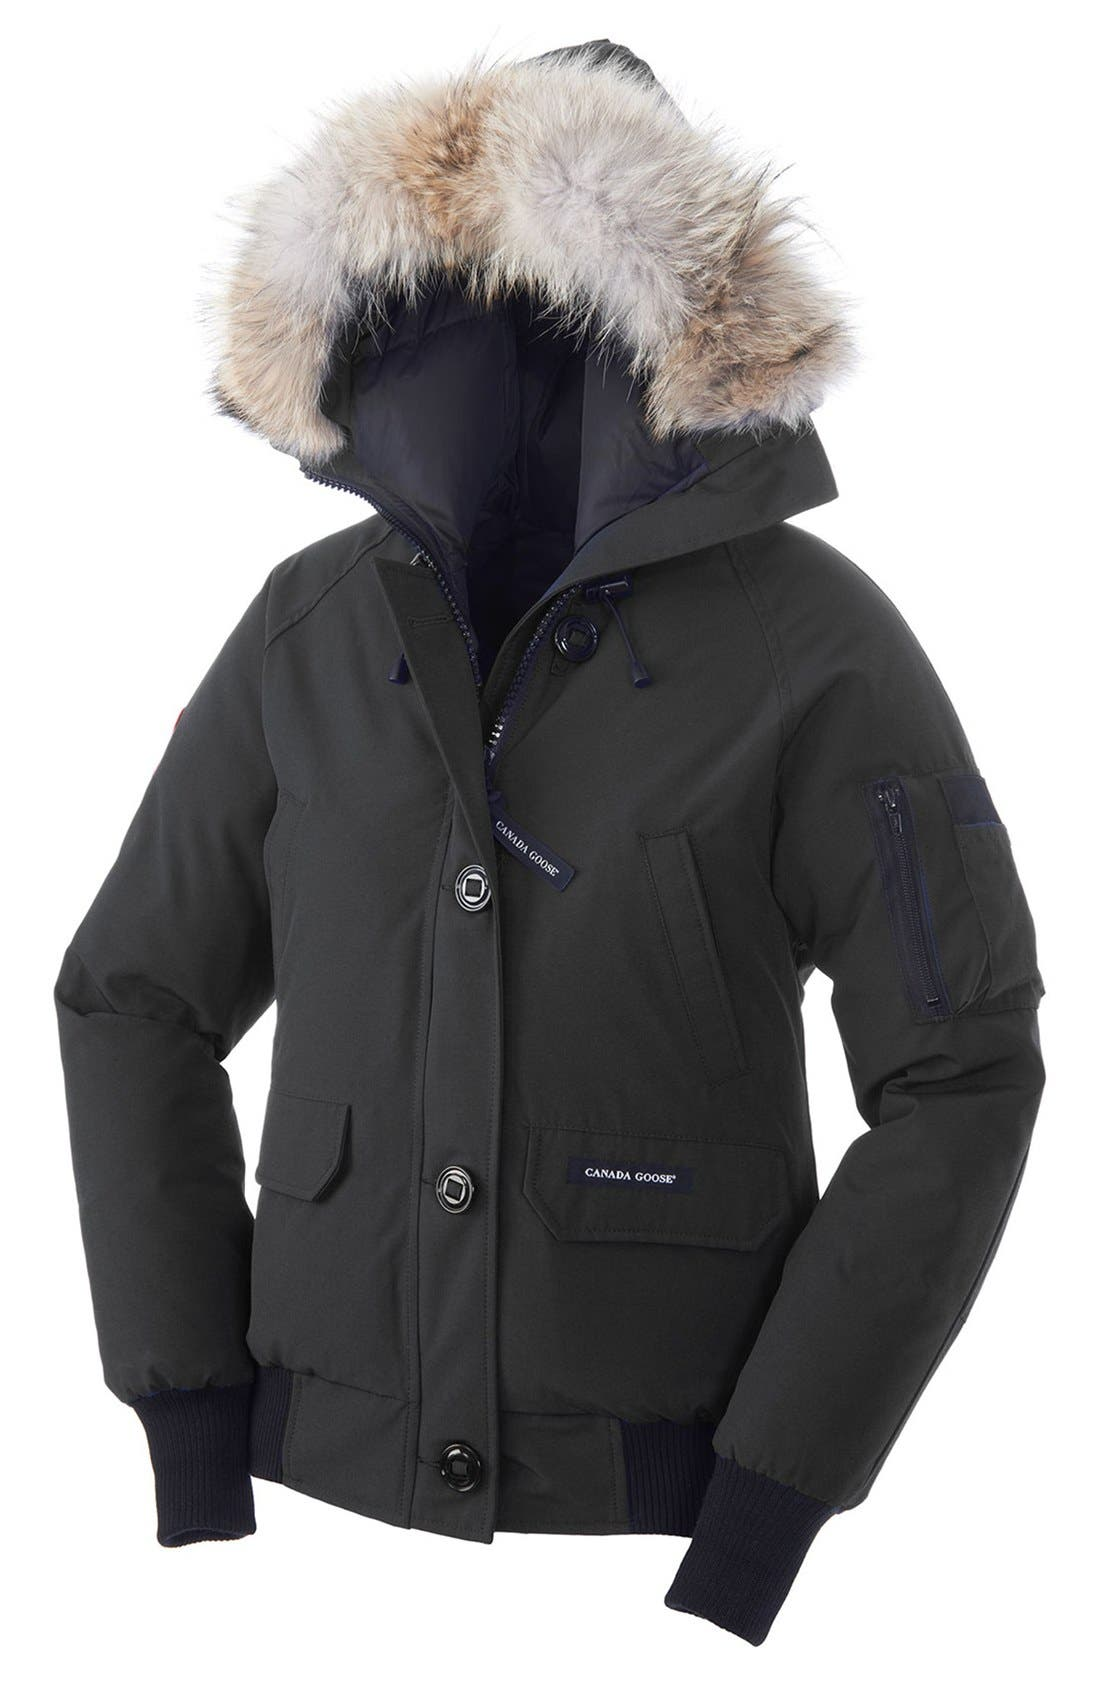 Main Image - Canada Goose 'Chilliwack' Regular Fit Down Bomber Jacket with Genuine Coyote Fur